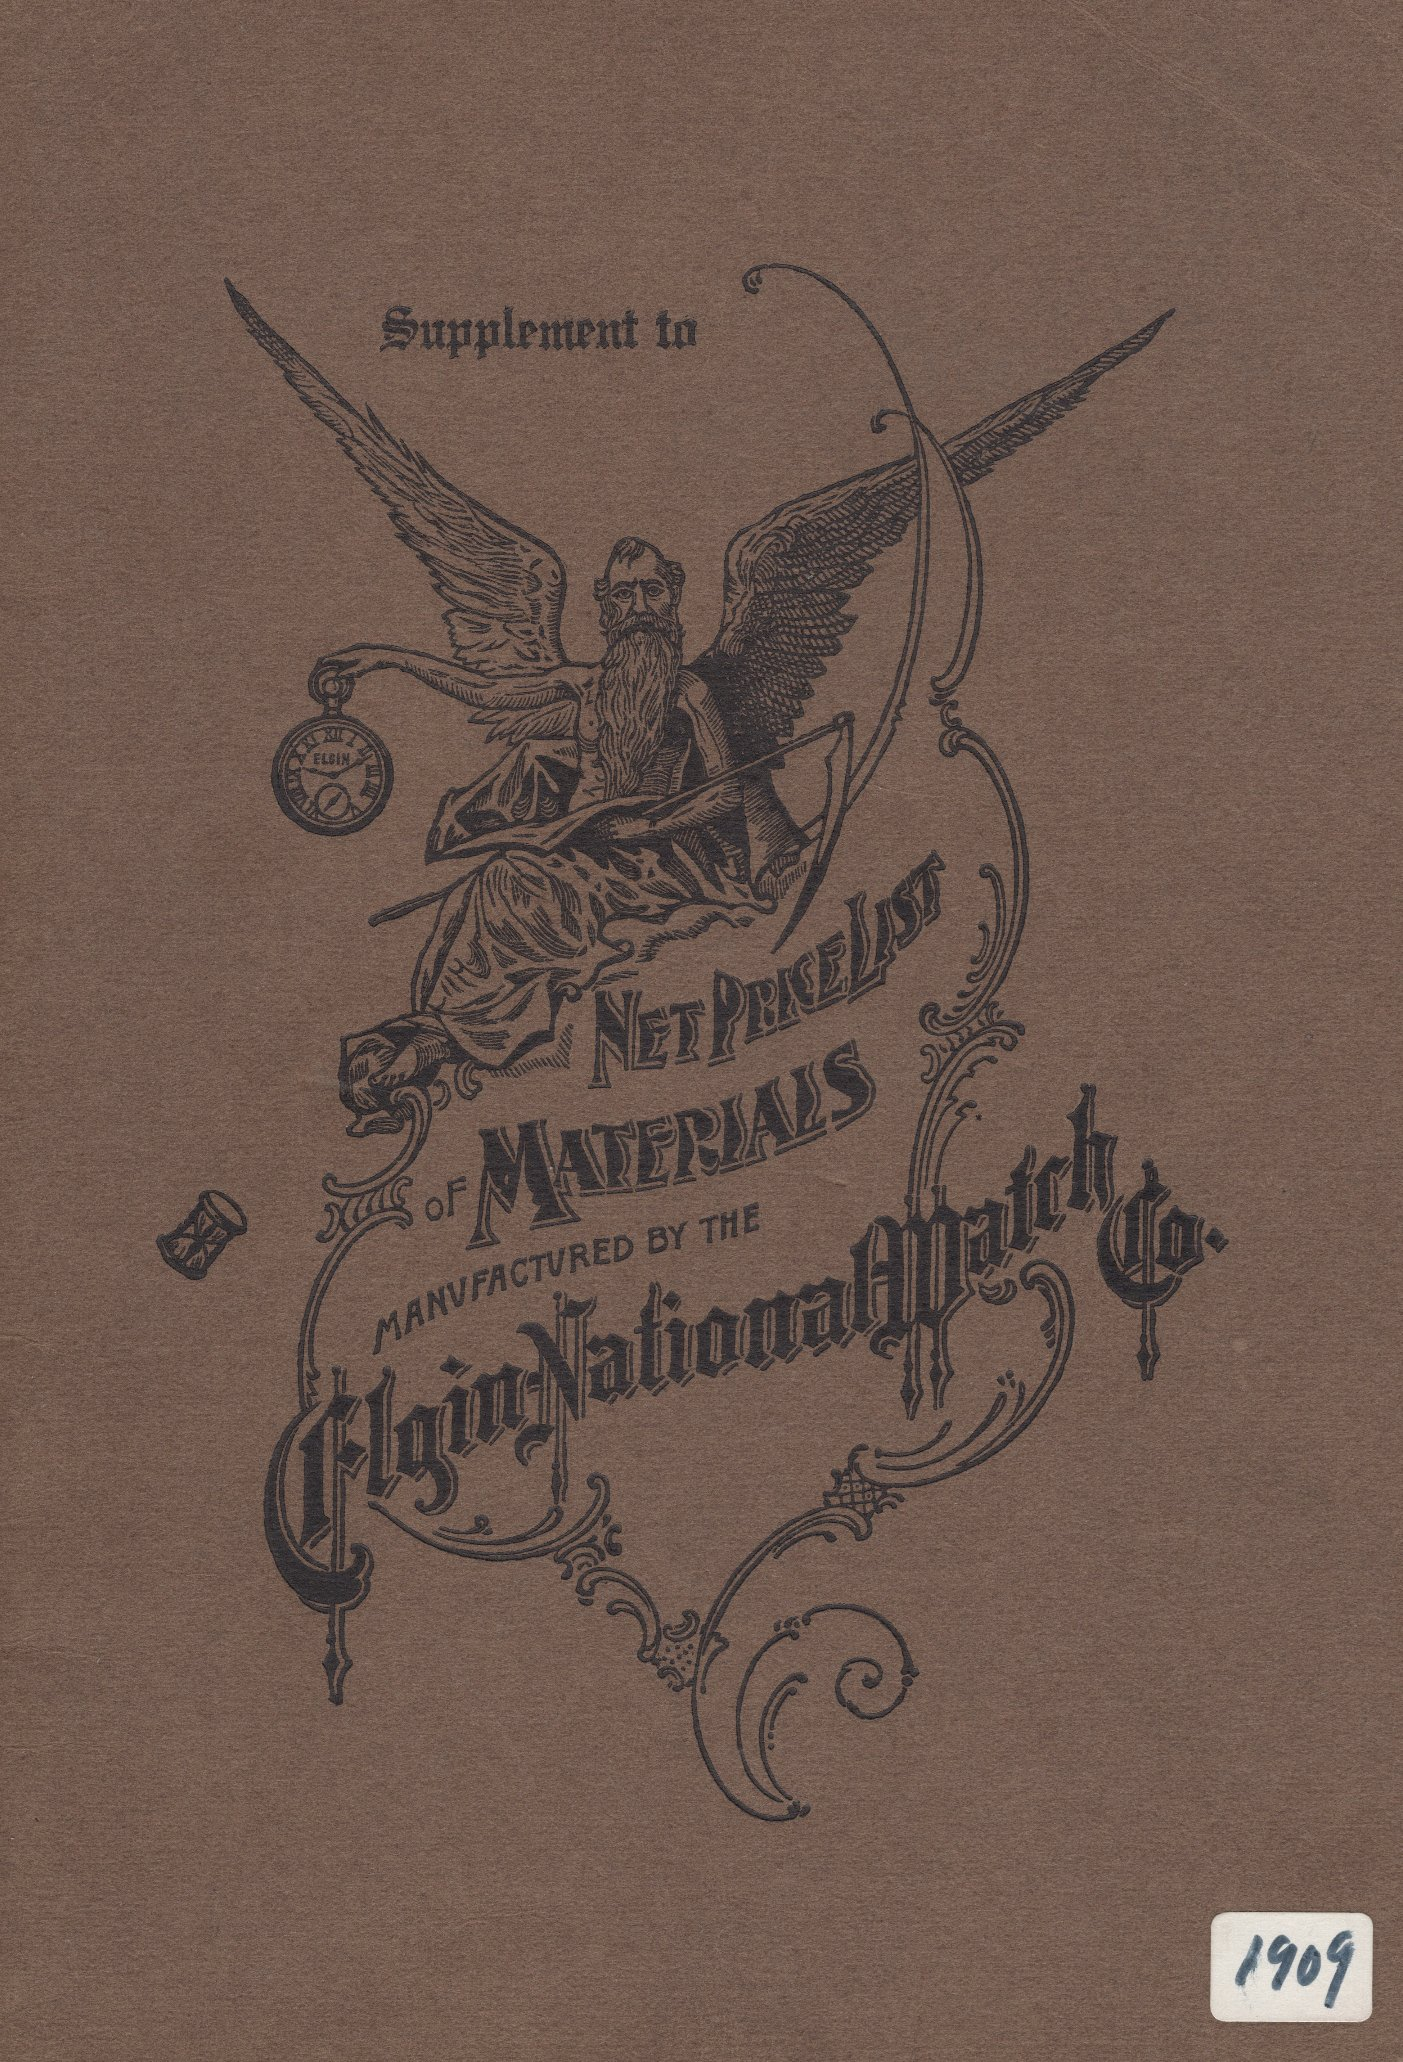 Supplement to Net Price List of Materials Manufactured by the Elgin National Watch Co. (1909) Cover Image